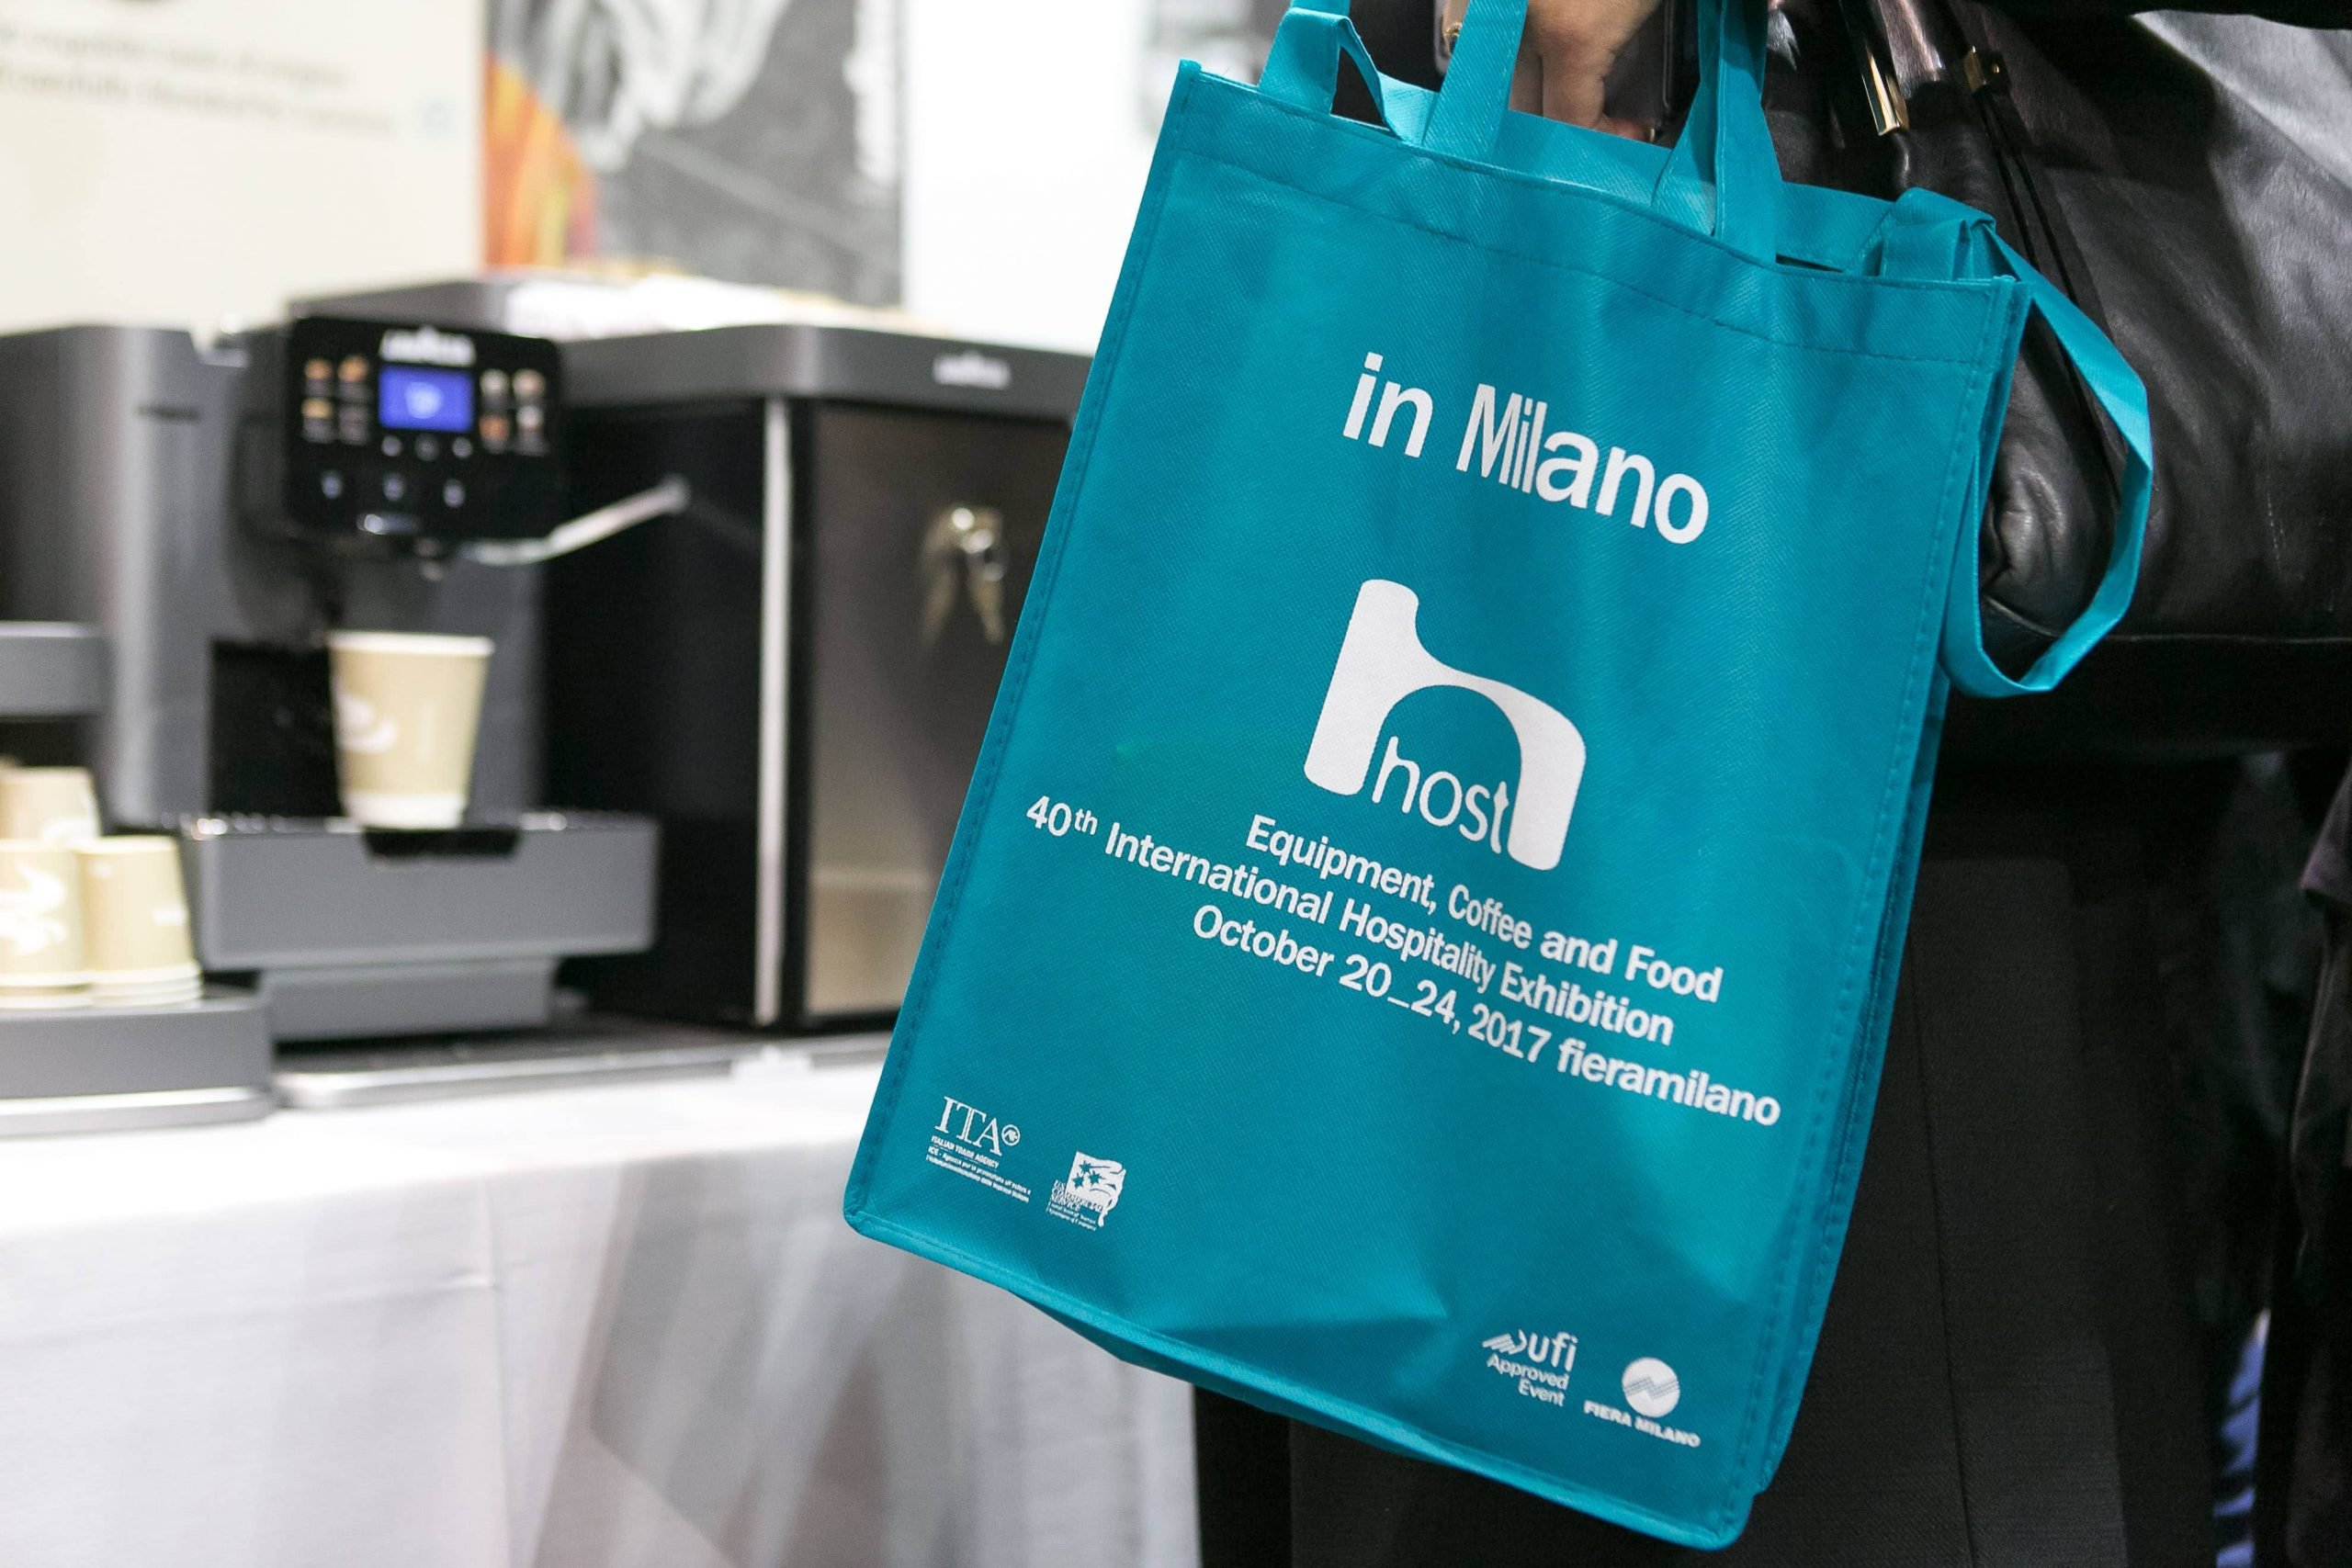 HostMilano 2017: coffee goes global at Sic,  becoming one with Gelato & Pastry